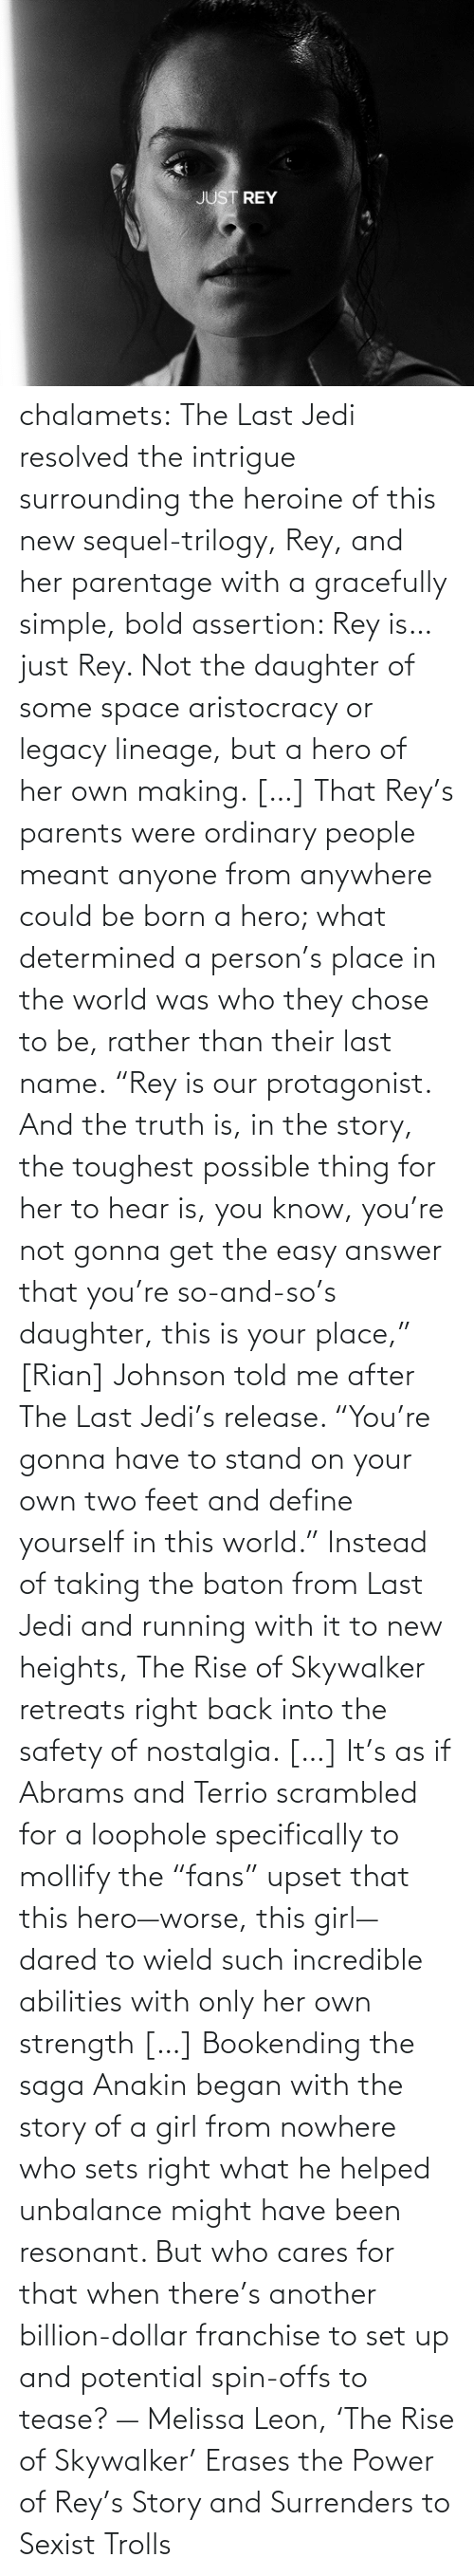 "Instead Of: chalamets:  The Last Jedi resolved the intrigue surrounding the heroine of this new sequel-trilogy, Rey, and her parentage with a gracefully simple, bold assertion: Rey is… just Rey. Not the daughter of some space aristocracy or legacy lineage, but a hero of her own making. […] That Rey's parents were ordinary people meant anyone from anywhere could be born a hero; what determined a person's place in the world was who they chose to be, rather than their last name. ""Rey is our protagonist. And the truth is, in the story, the toughest possible thing for her to hear is, you know, you're not gonna get the easy answer that you're so-and-so's daughter, this is your place,"" [Rian] Johnson told me after The Last Jedi's release. ""You're gonna have to stand on your own two feet and define yourself in this world."" Instead of taking the baton from Last Jedi and running with it to new heights, The Rise of Skywalker retreats right back into the safety of nostalgia. […] It's as if Abrams and Terrio scrambled for a loophole specifically to mollify the ""fans"" upset that this hero—worse, this girl—dared to wield such incredible abilities with only her own strength […] Bookending the saga Anakin began with the story of a girl from nowhere who sets right what he helped unbalance might have been resonant. But who cares for that when there's another billion-dollar franchise to set up and potential spin-offs to tease? — Melissa Leon, 'The Rise of Skywalker' Erases the Power of Rey's Story and Surrenders to Sexist Trolls"